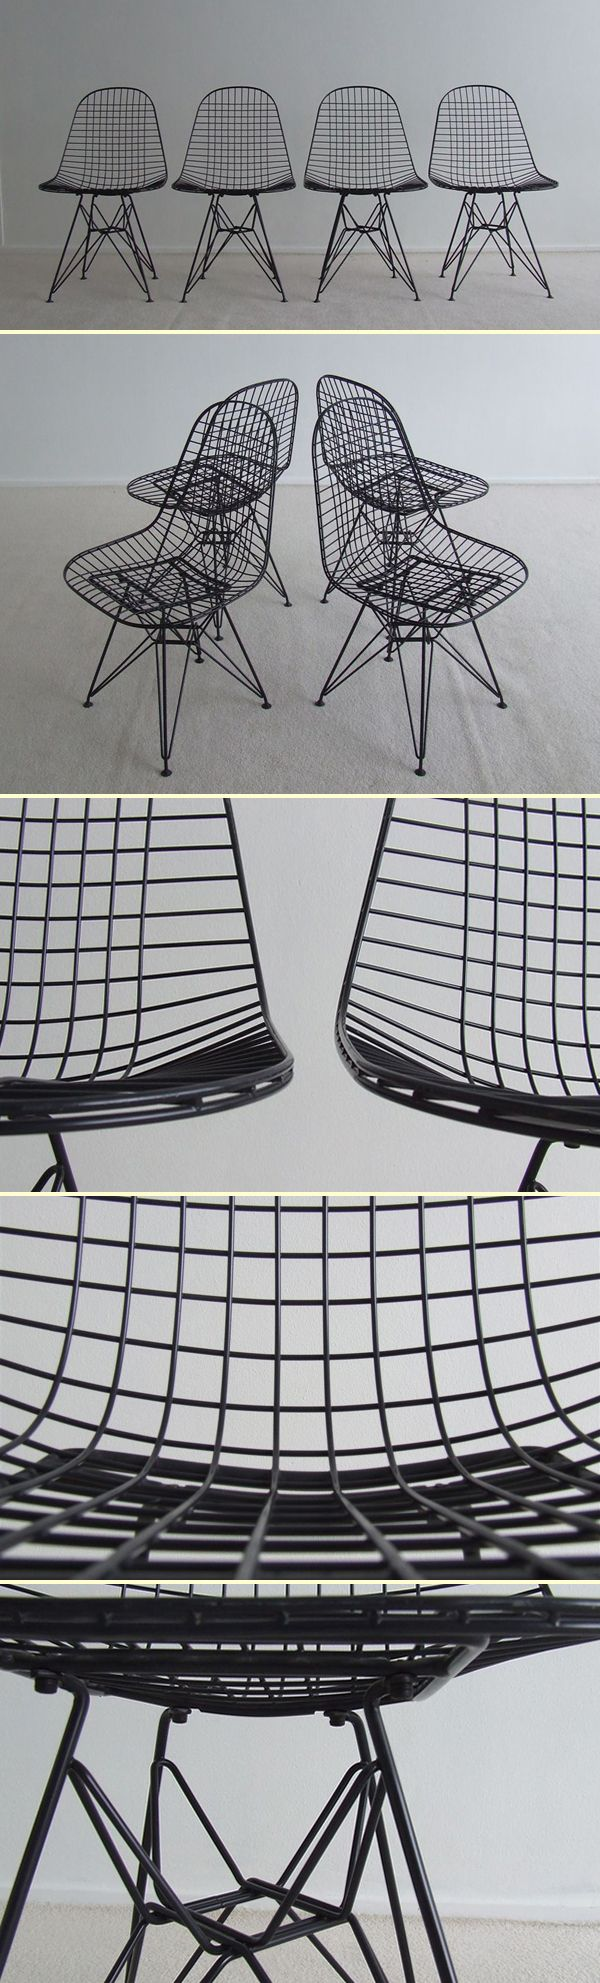 deduktive method | zoom: top down | from total view to details | example: design history, charles eames 'eiffel wire chair' 1964